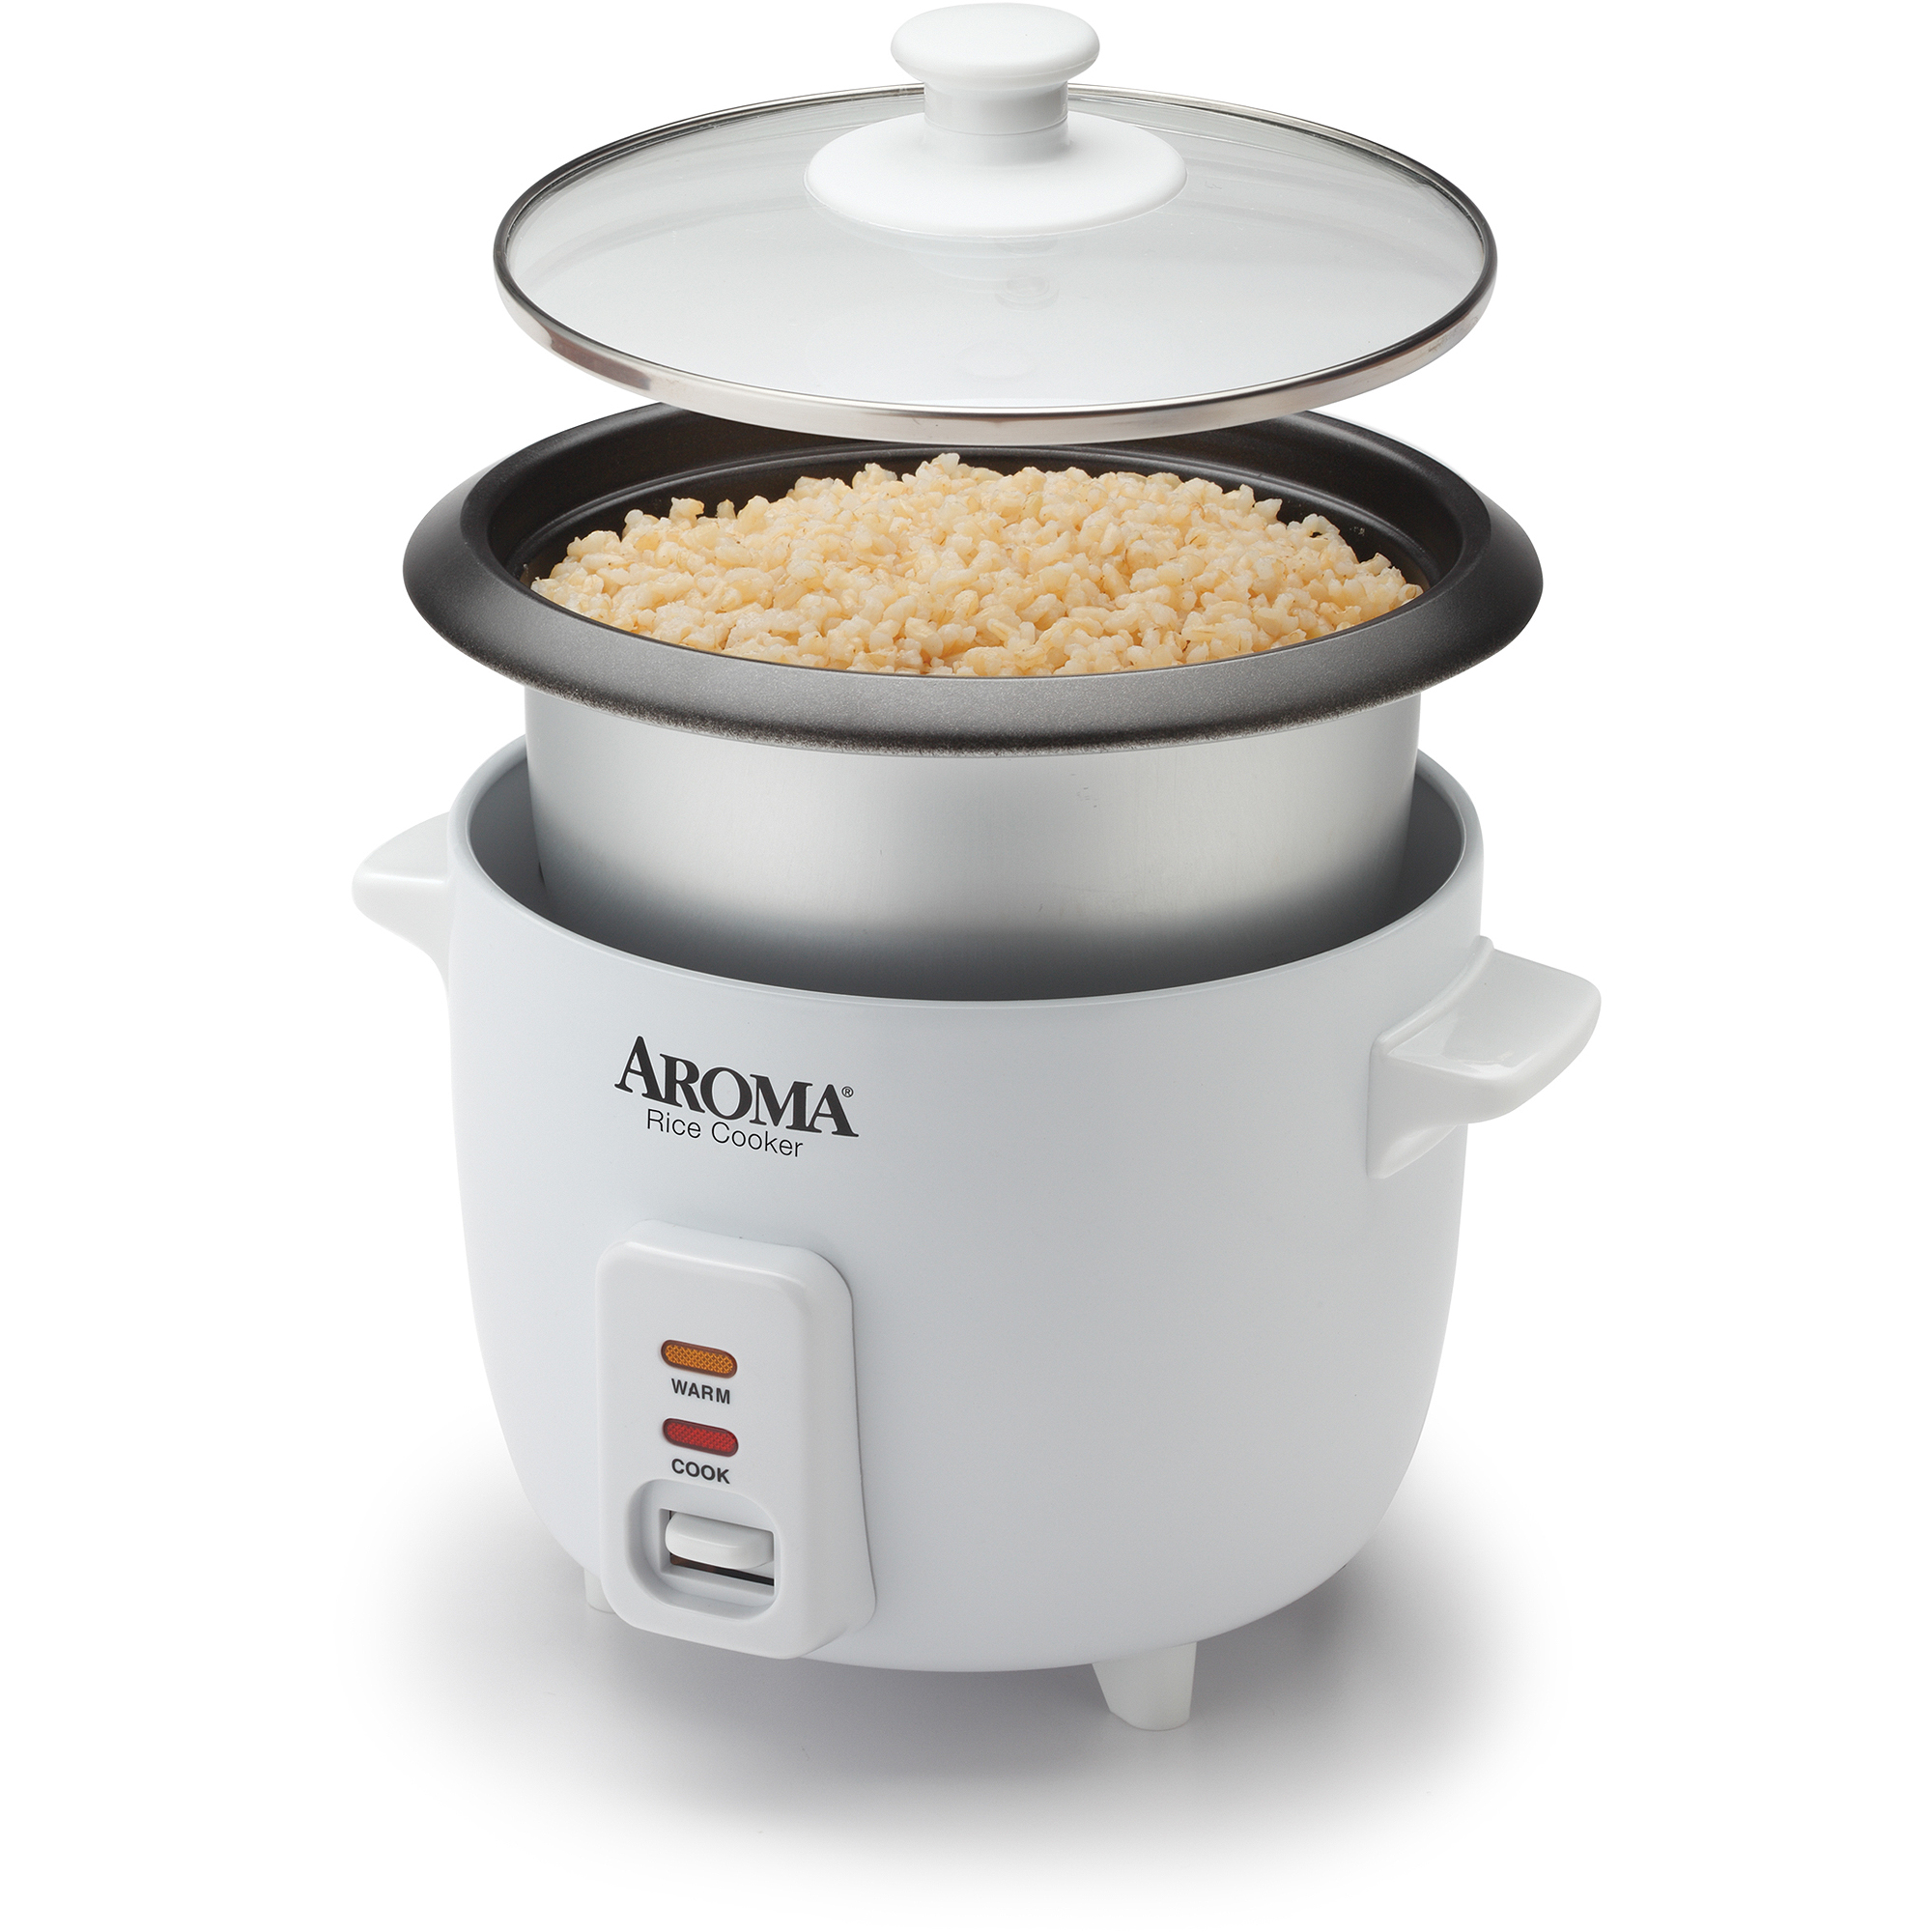 Aroma 6-Cup Pot-Style Rice Cooker